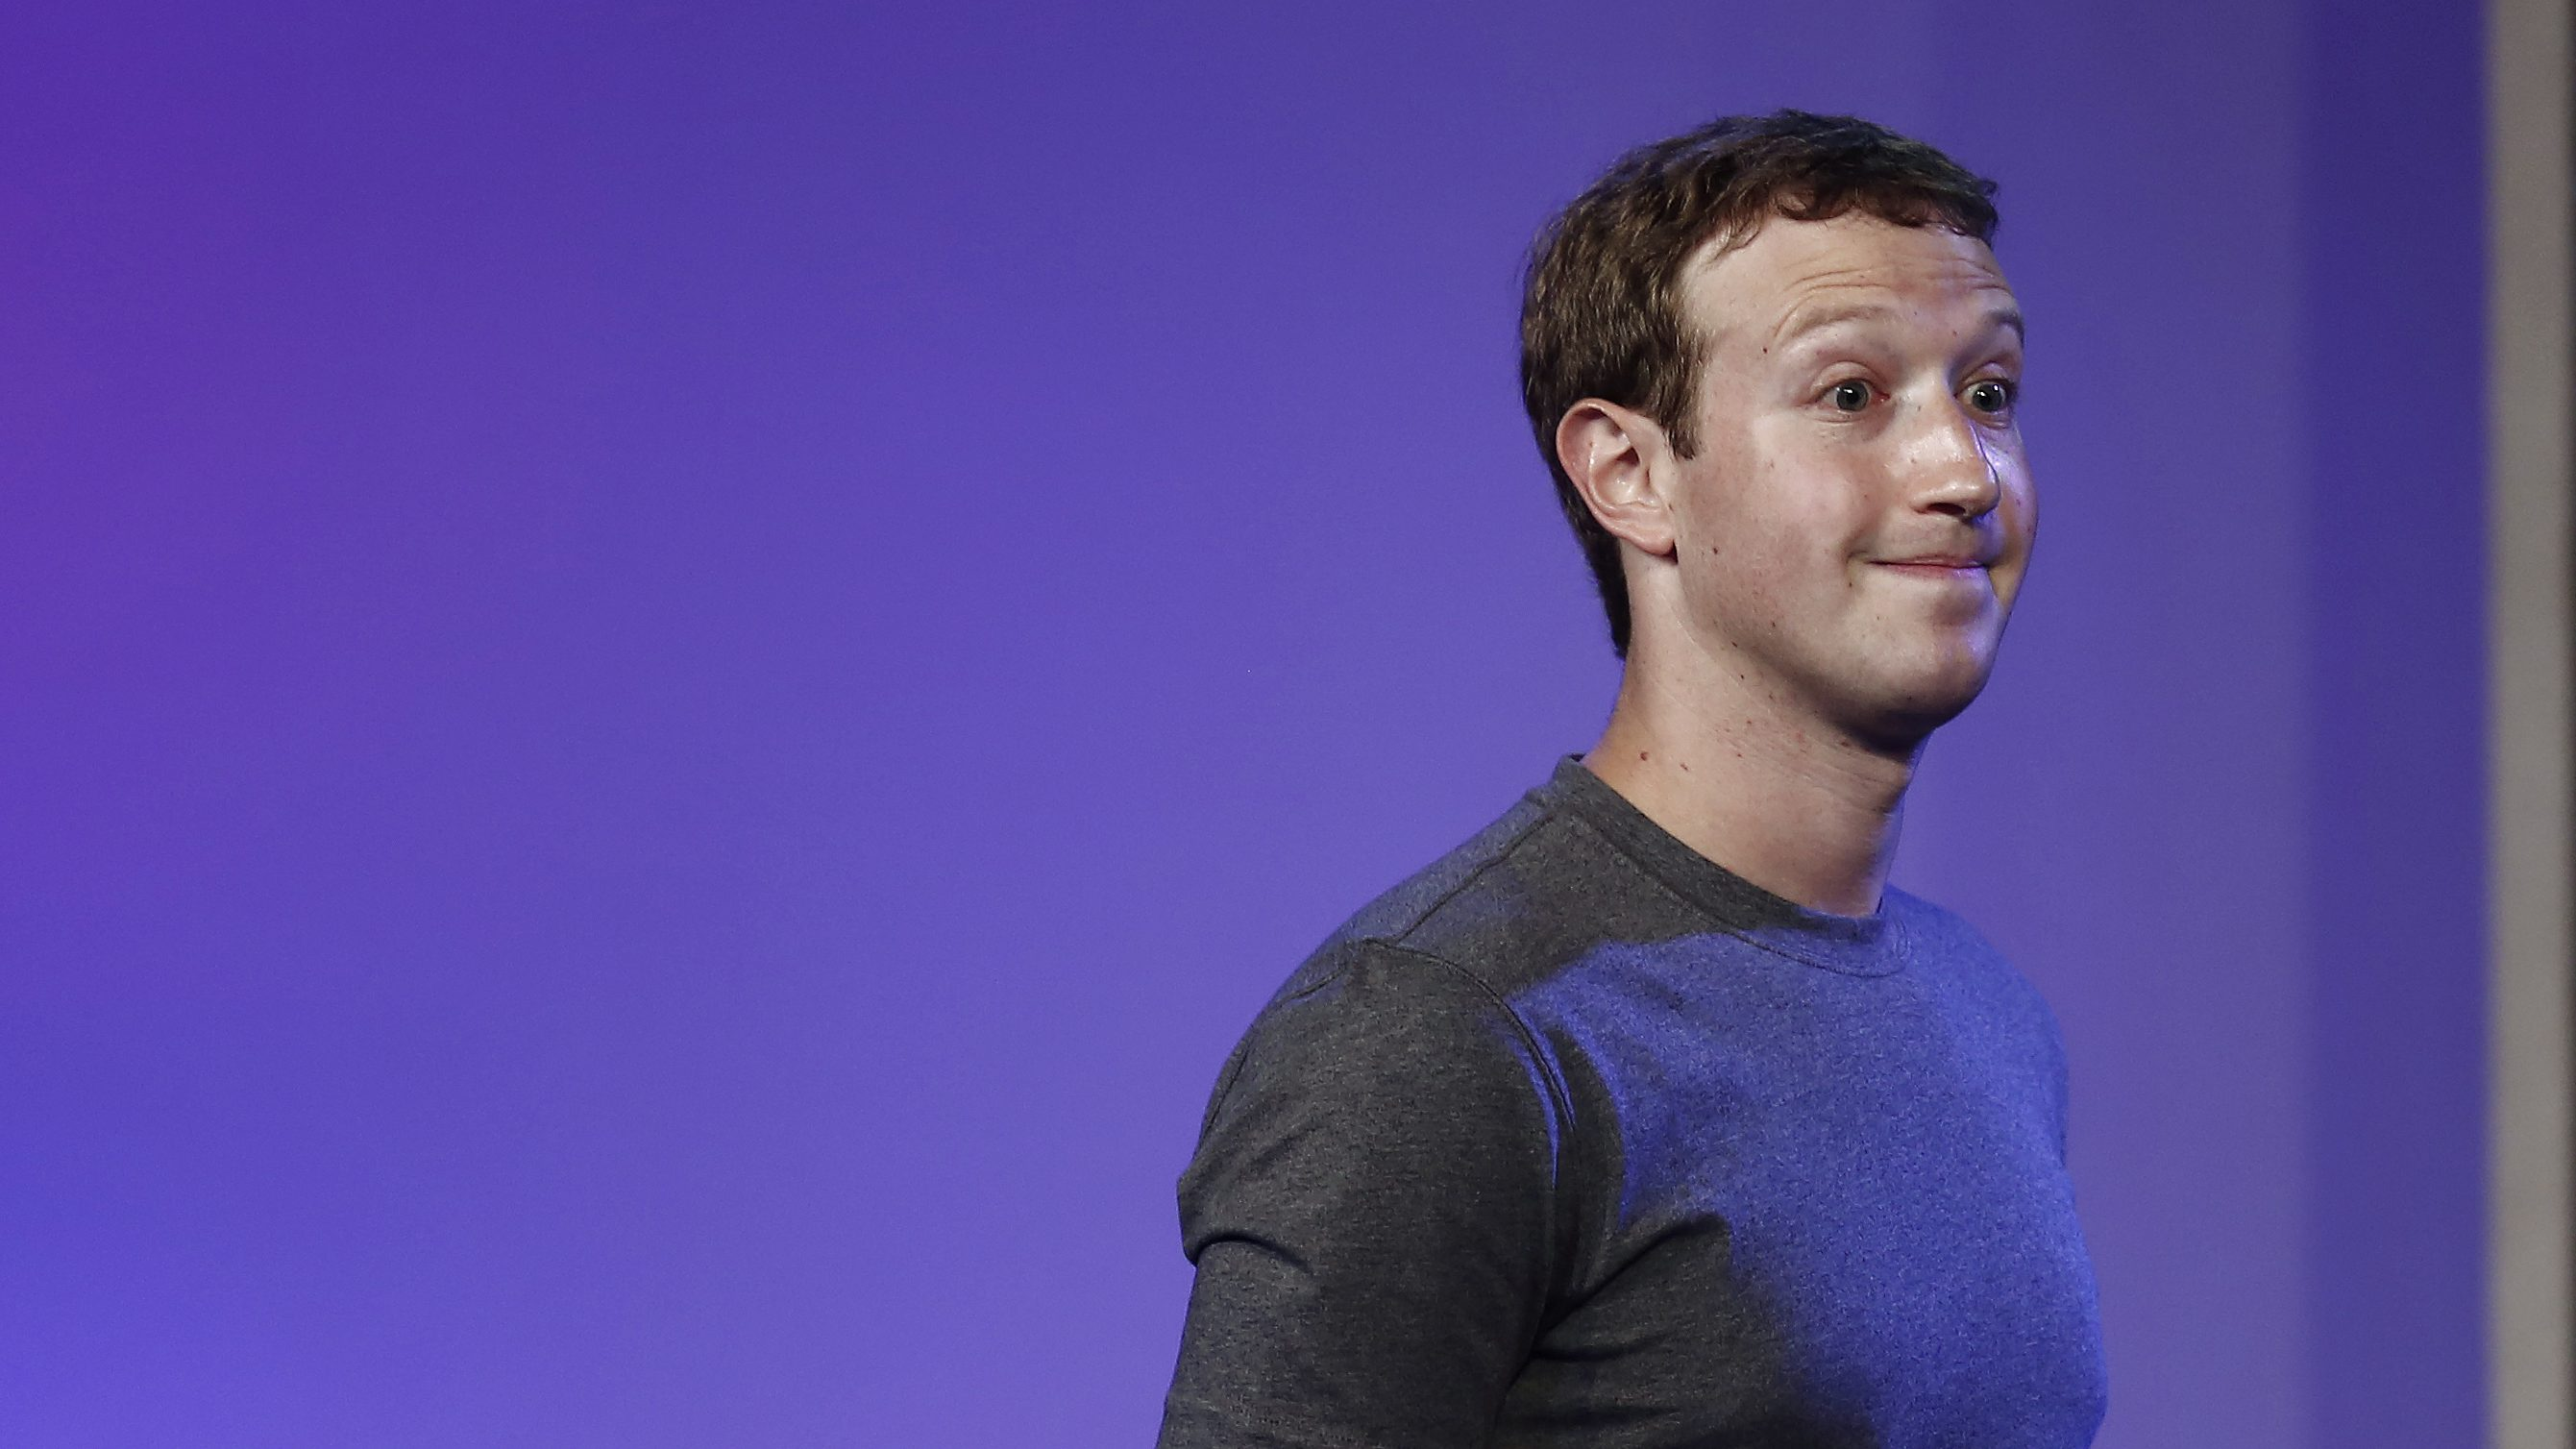 Facebook S Fall From Grace Cost Jeff Bezos Jeff Ma And Other Ceos